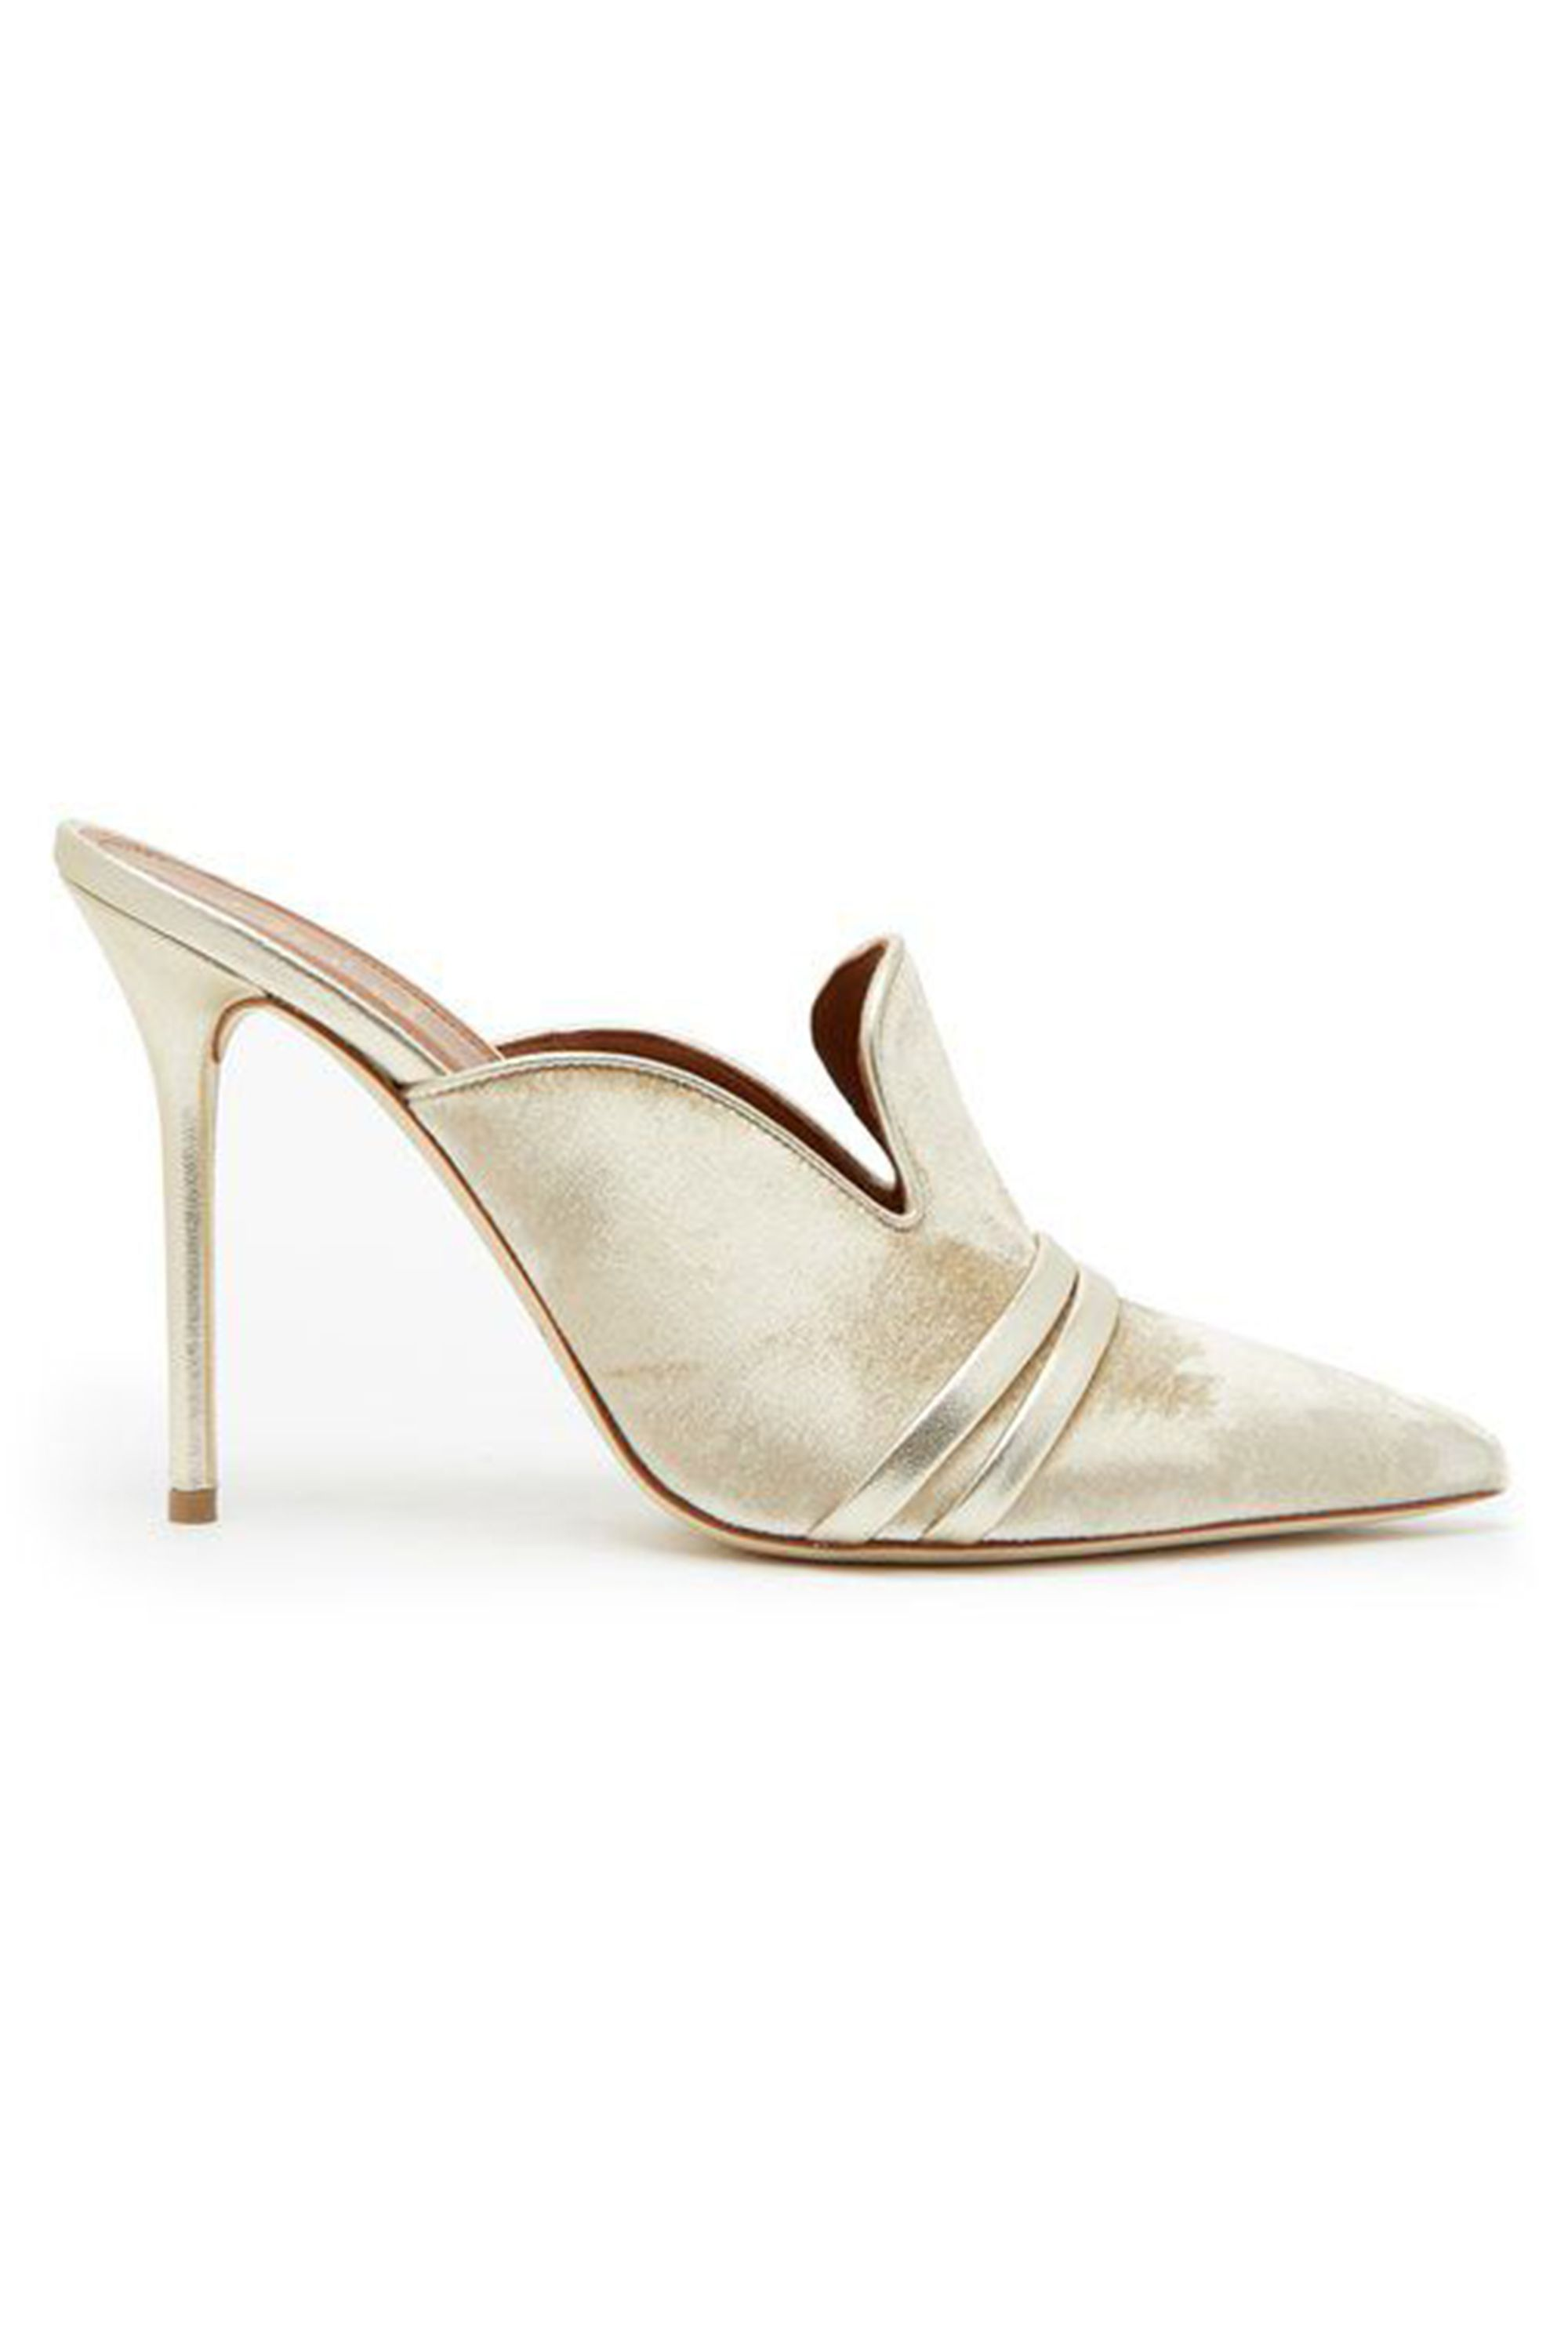 WEDDING SHOES: A STEP IN THE RIGHT DIRECTION